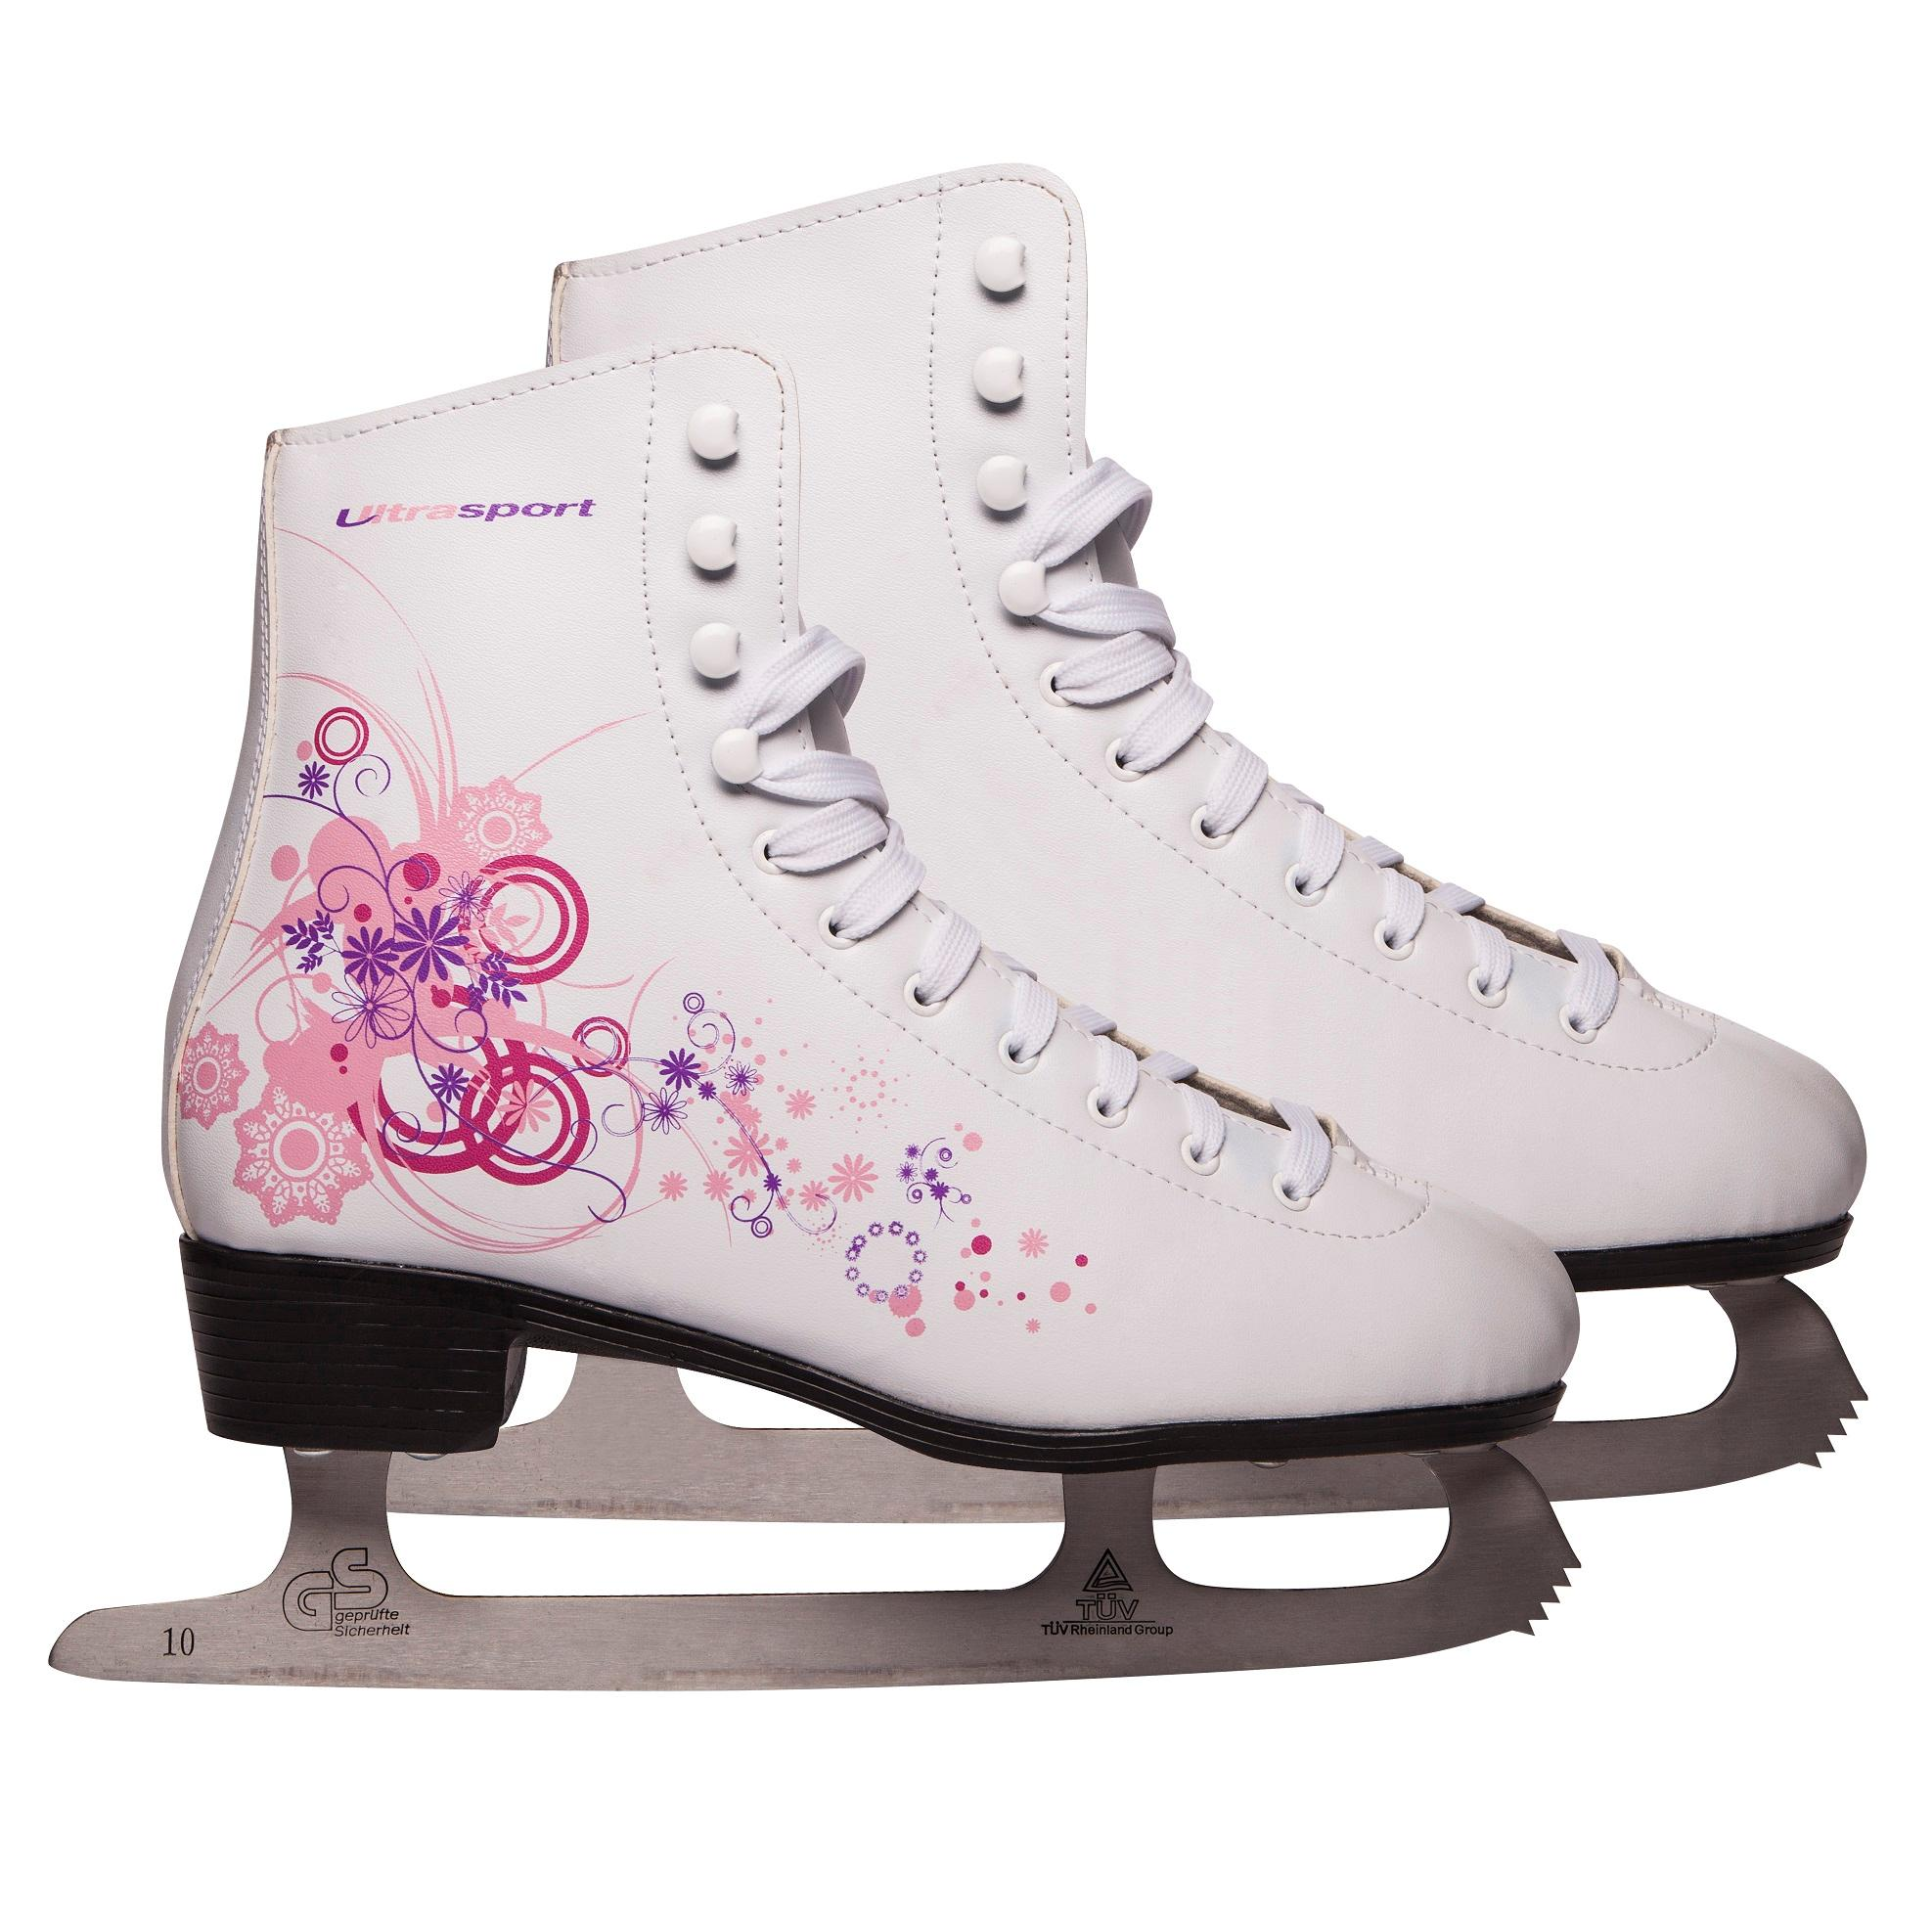 Patin a glace fille - Achat / Vente Patin a glace fille